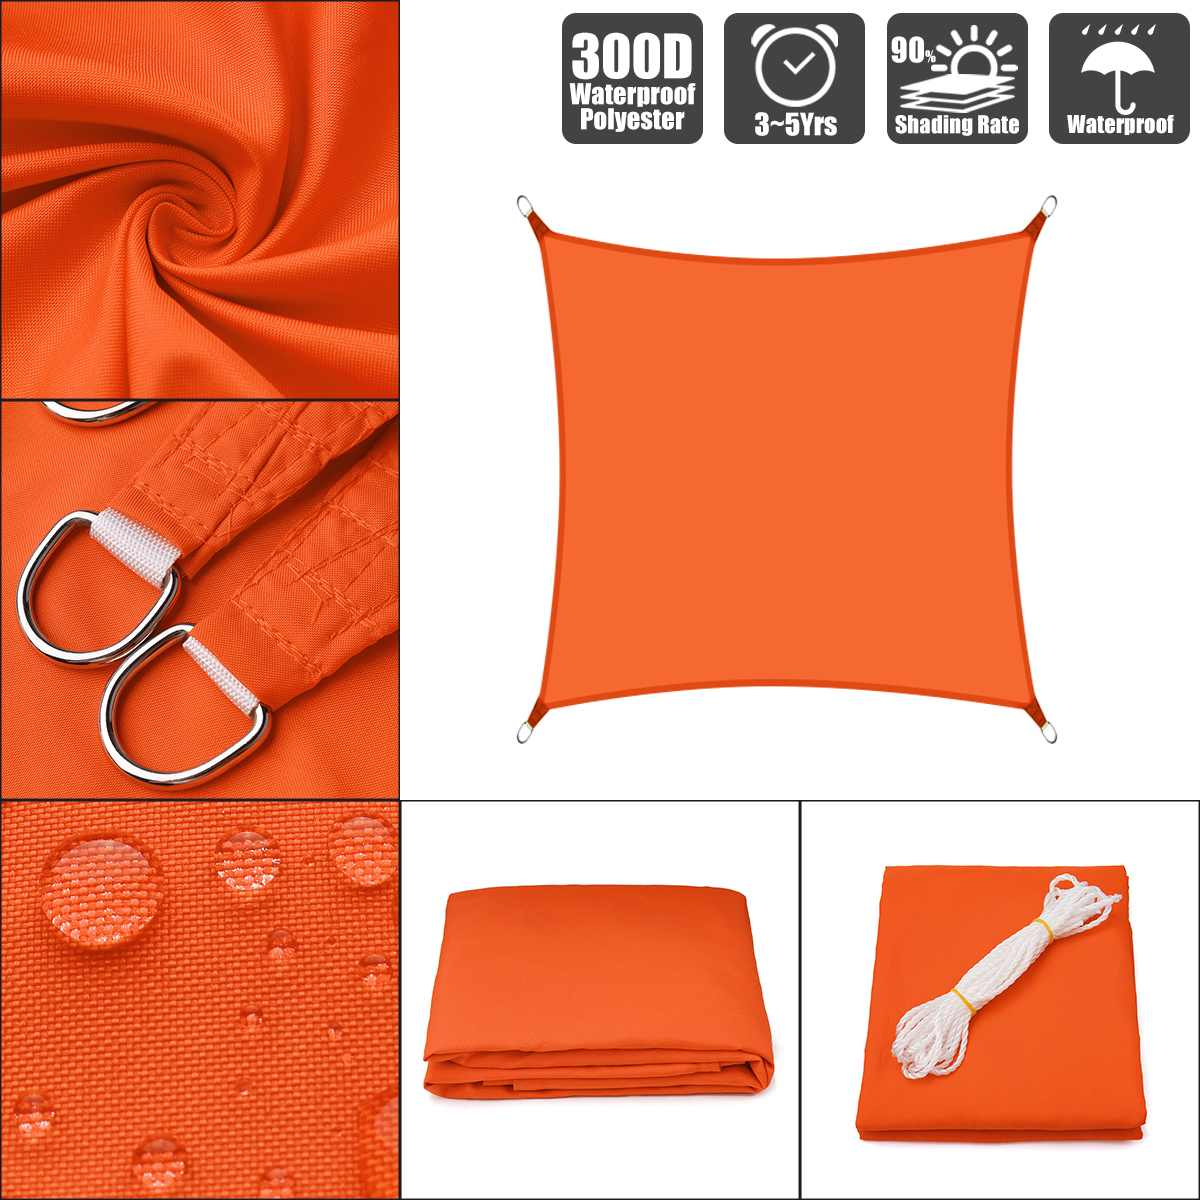 Orange Rectangle Waterproof Sun Shade Sails (300D/160GSM) – Sizes: 2.5×2.5m, 2.5x3m, 2x2m, 2x3m, 2x4m, 2x5m, 3.6×3.6m, 3x3m, 3x4m, 3x5m, 4x4m)